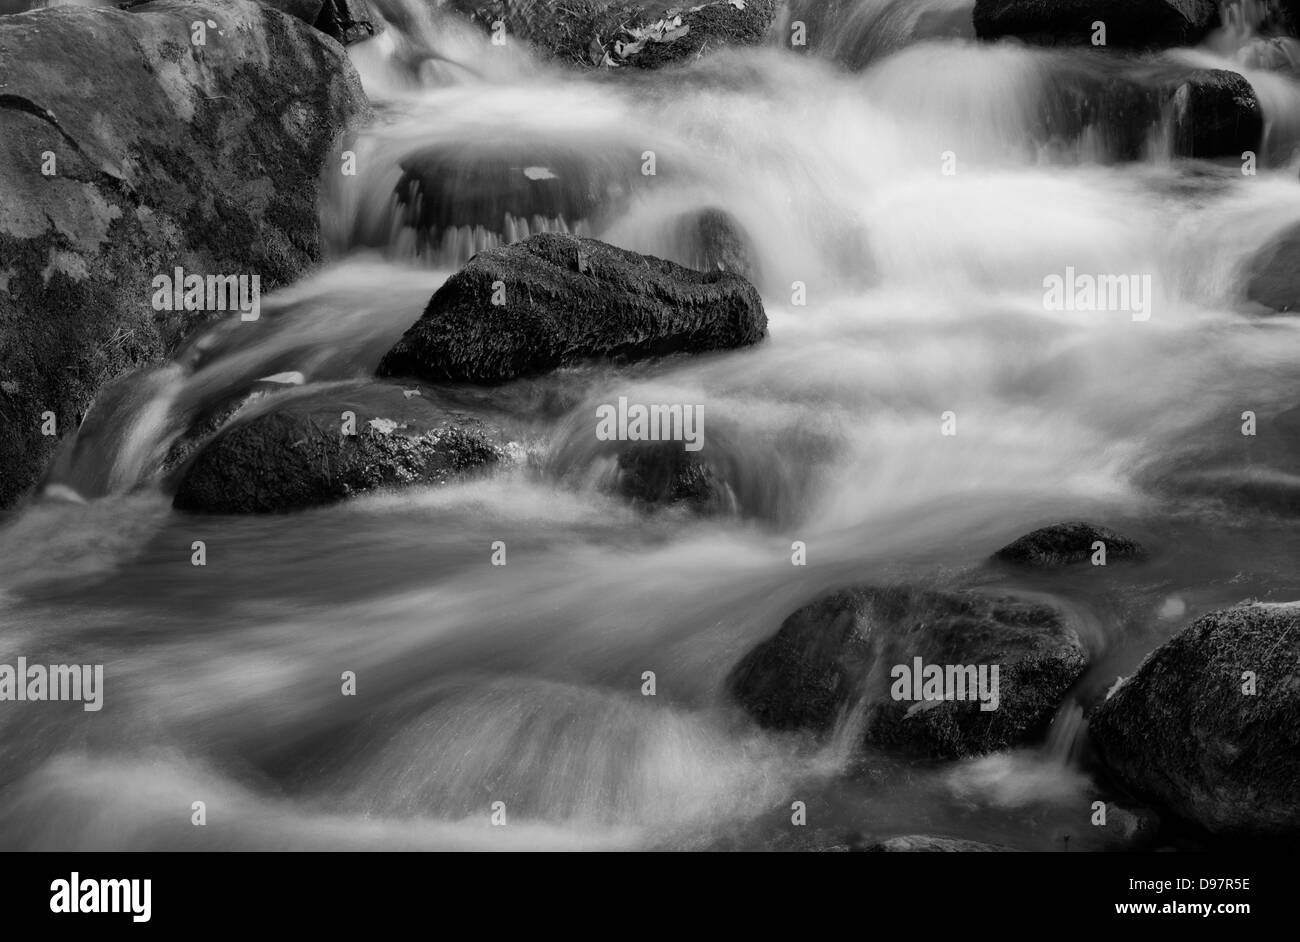 Die Felsen und Wasser-Strömung entlang Tremont Creek in den Great Smoky Mountains National Park, Tennessee Stockbild